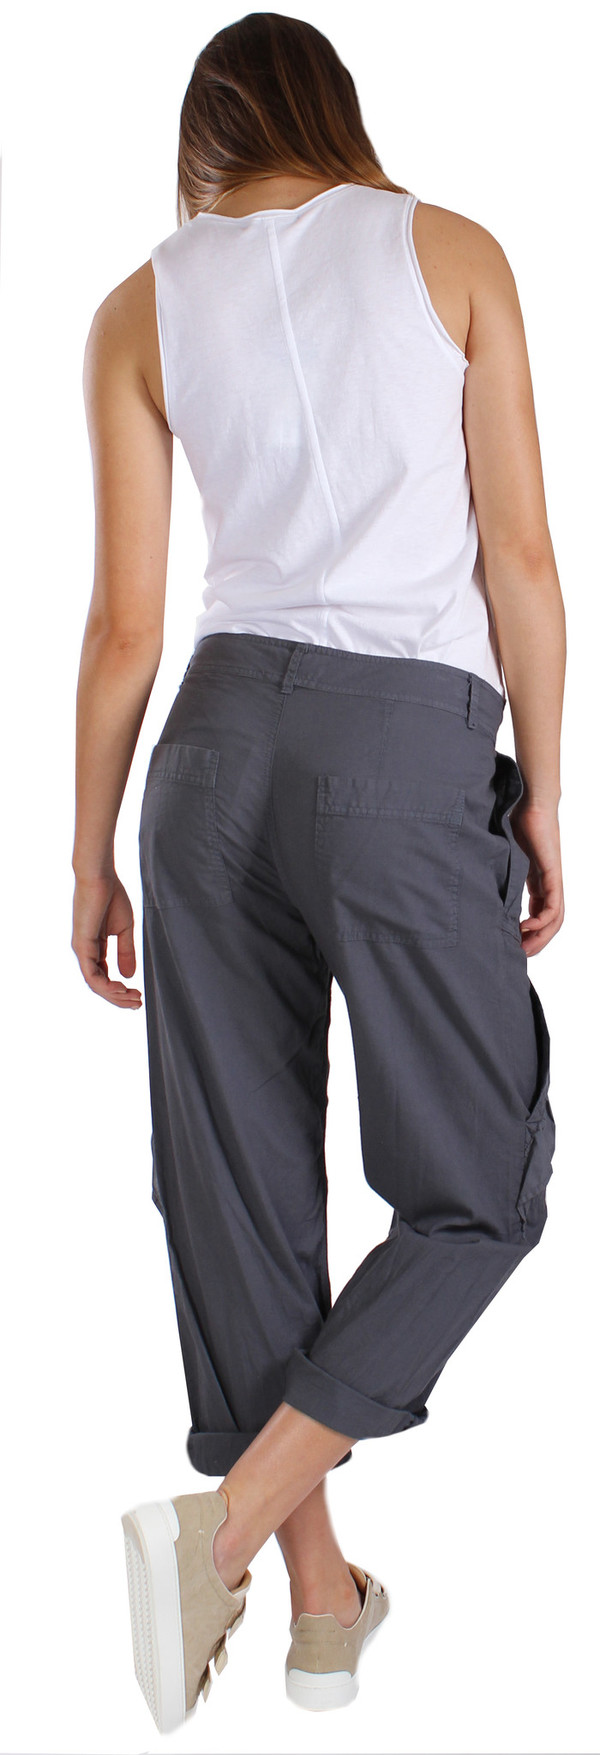 Prairie Underground Painter's Pant in Cruiseliner